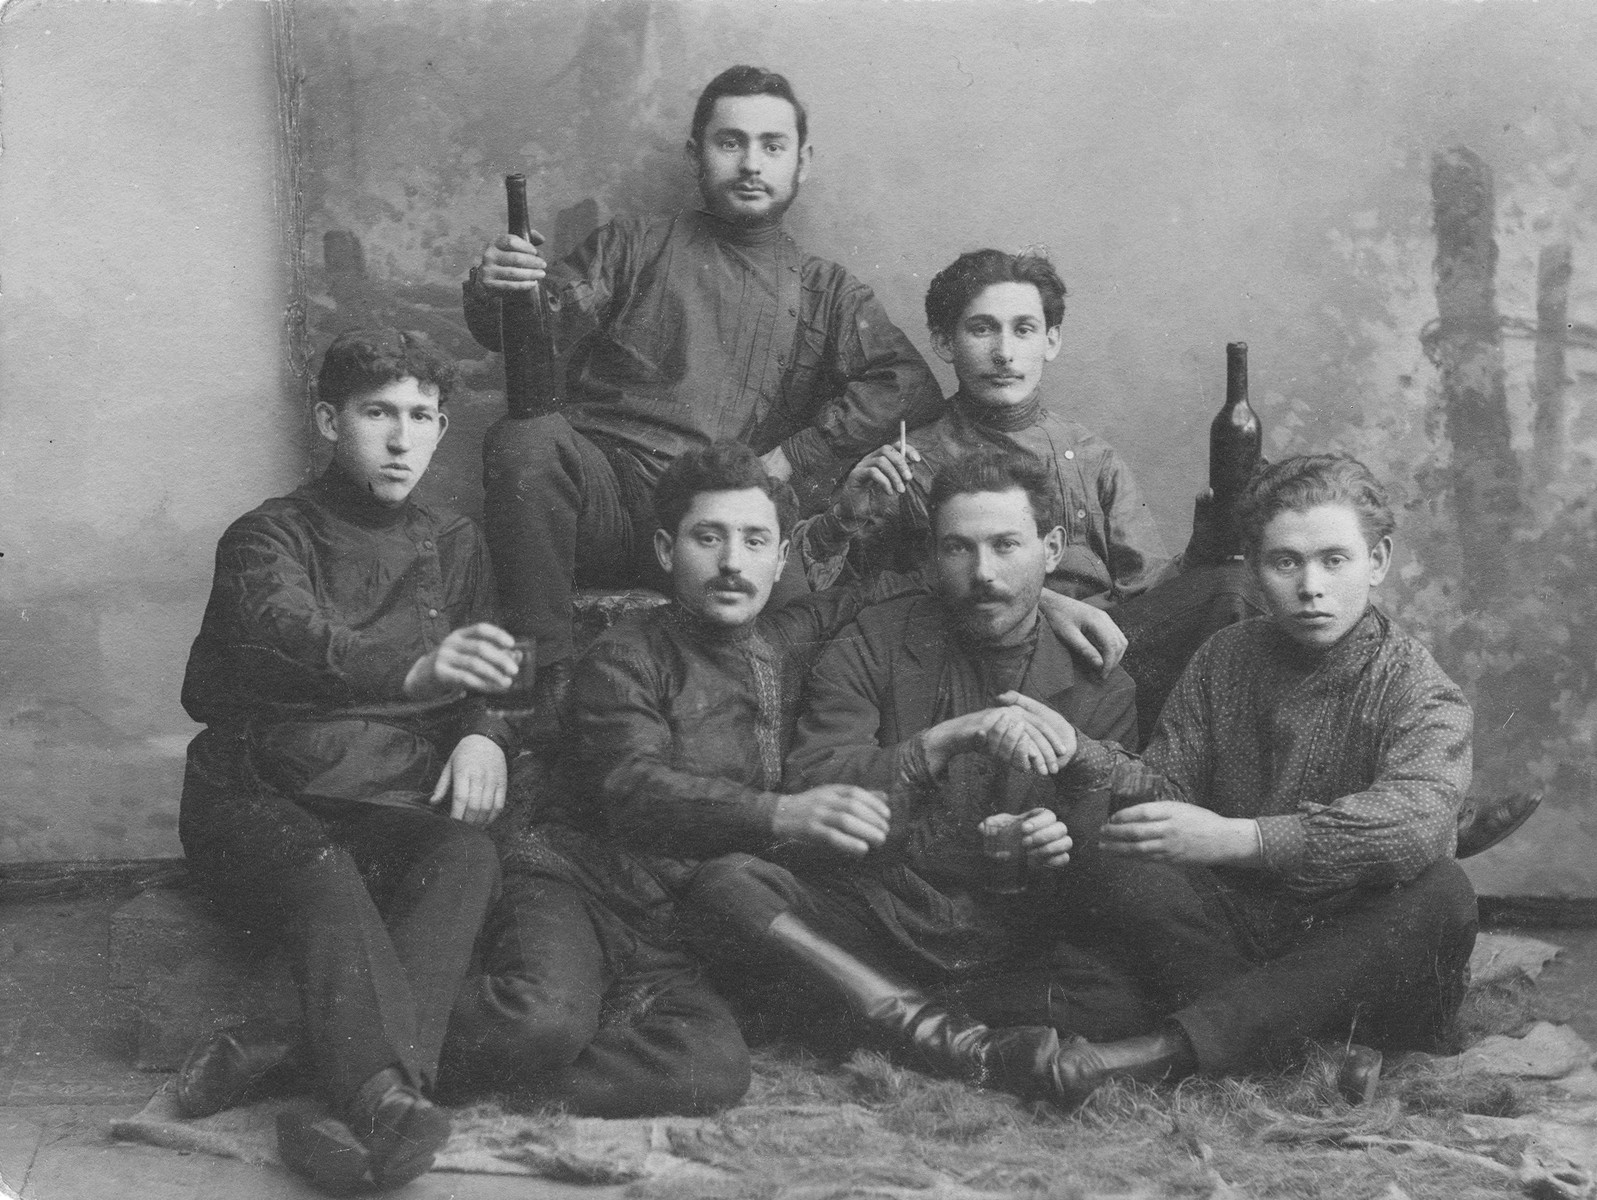 Studio portrait of a group of young Jewish men posing with wine bottles taken in Kaunas in the early 1900s.